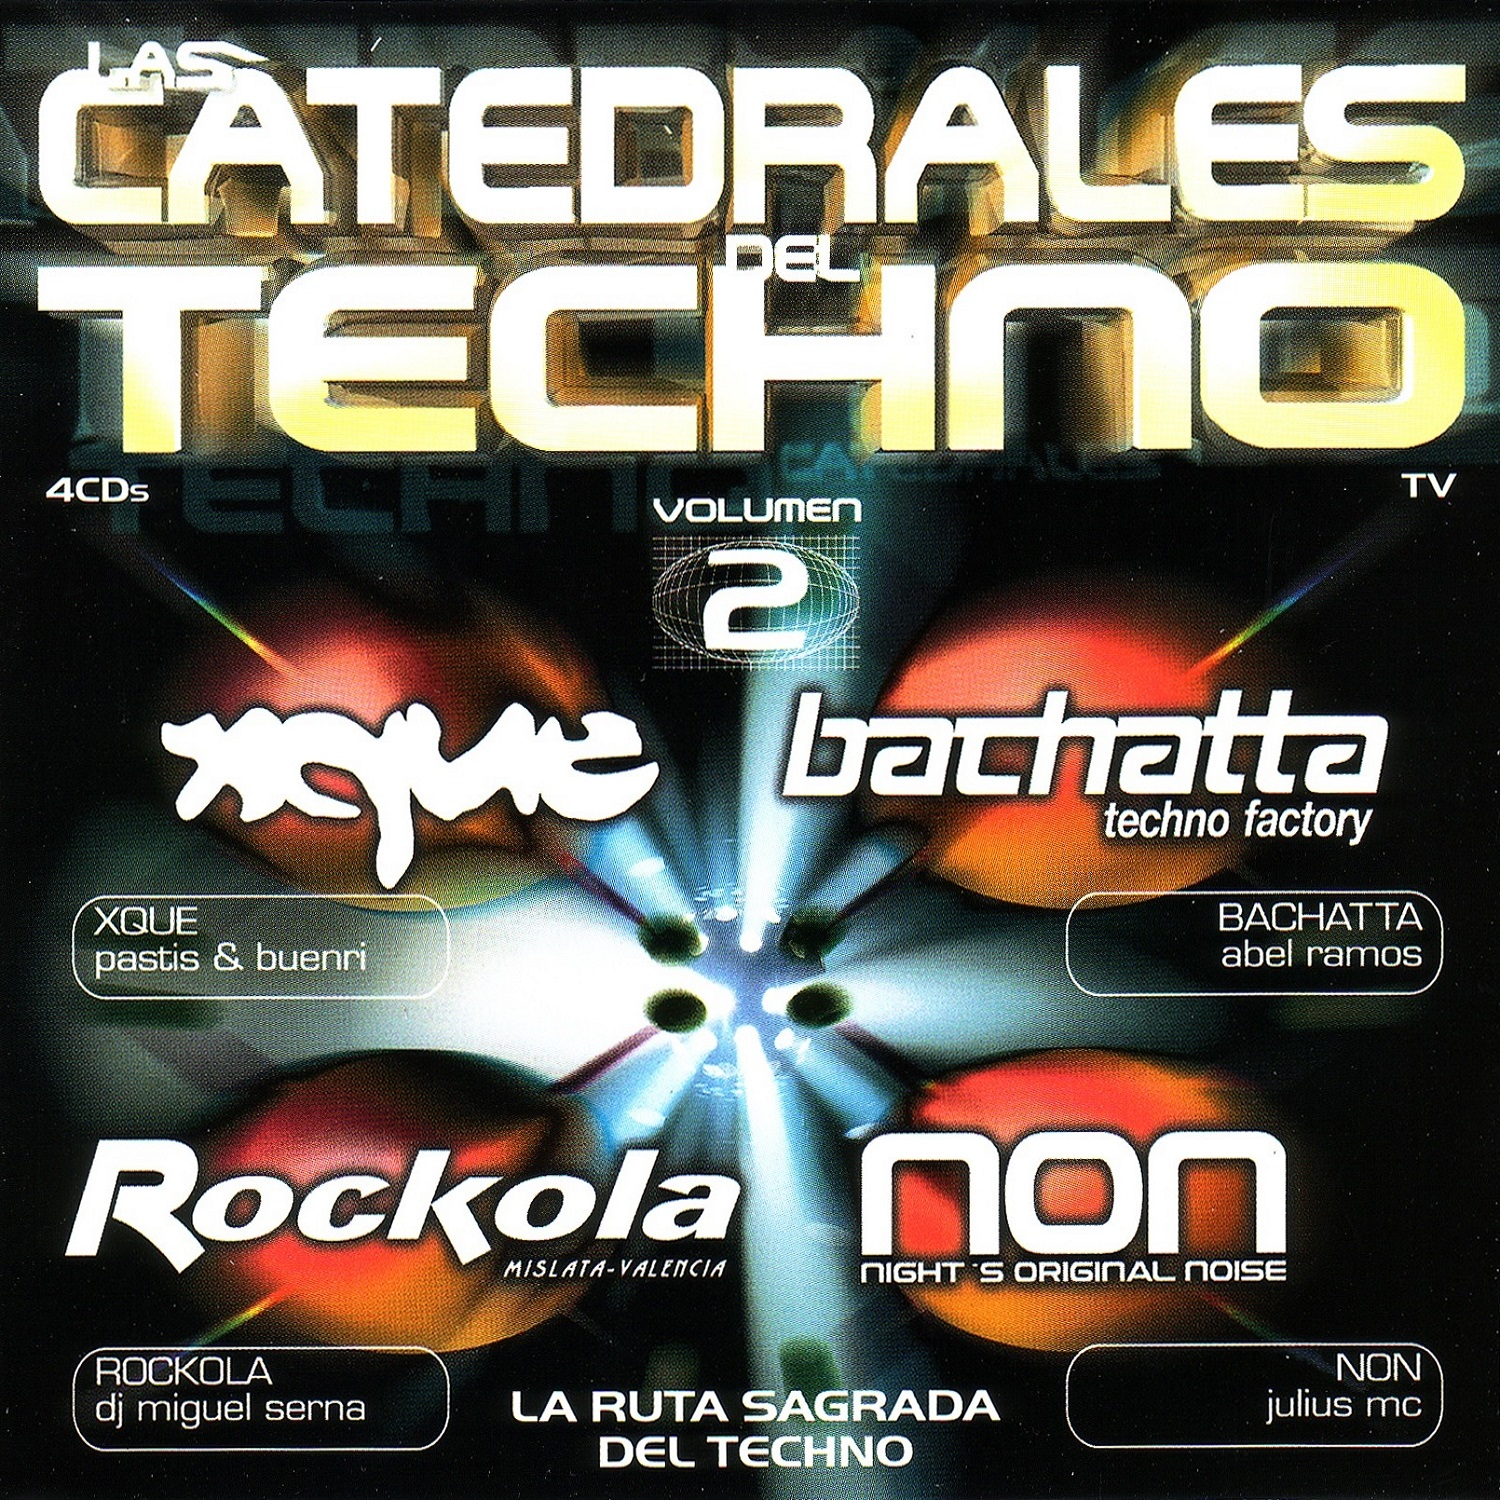 Las Catedrales Del Techno Vol. 2